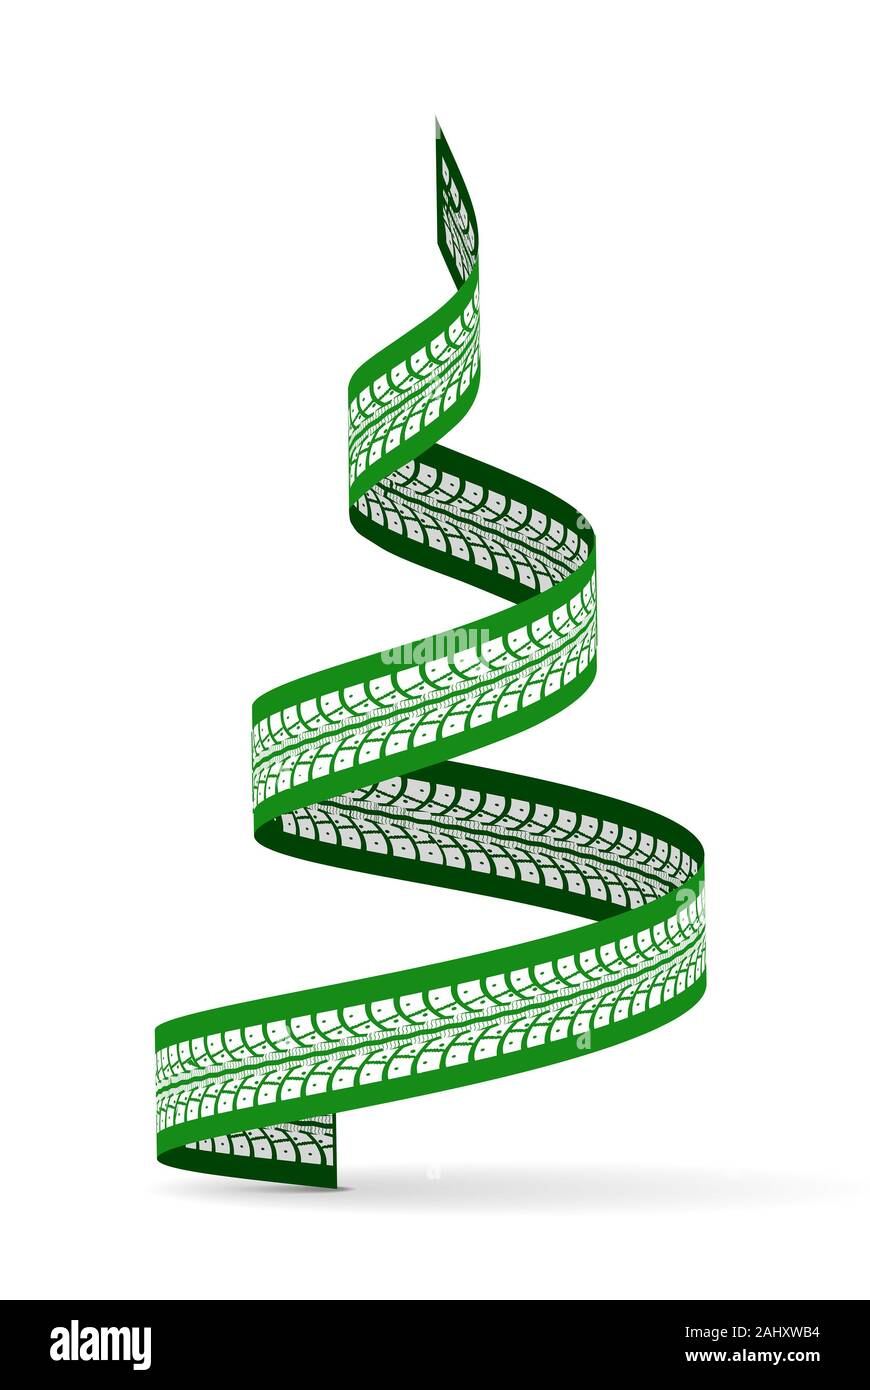 New Year Tree Made Of Tire Tracks Twisted In A Spiral Shape Vector 3d Illustration On A White Background With Shadow Stock Photo Alamy